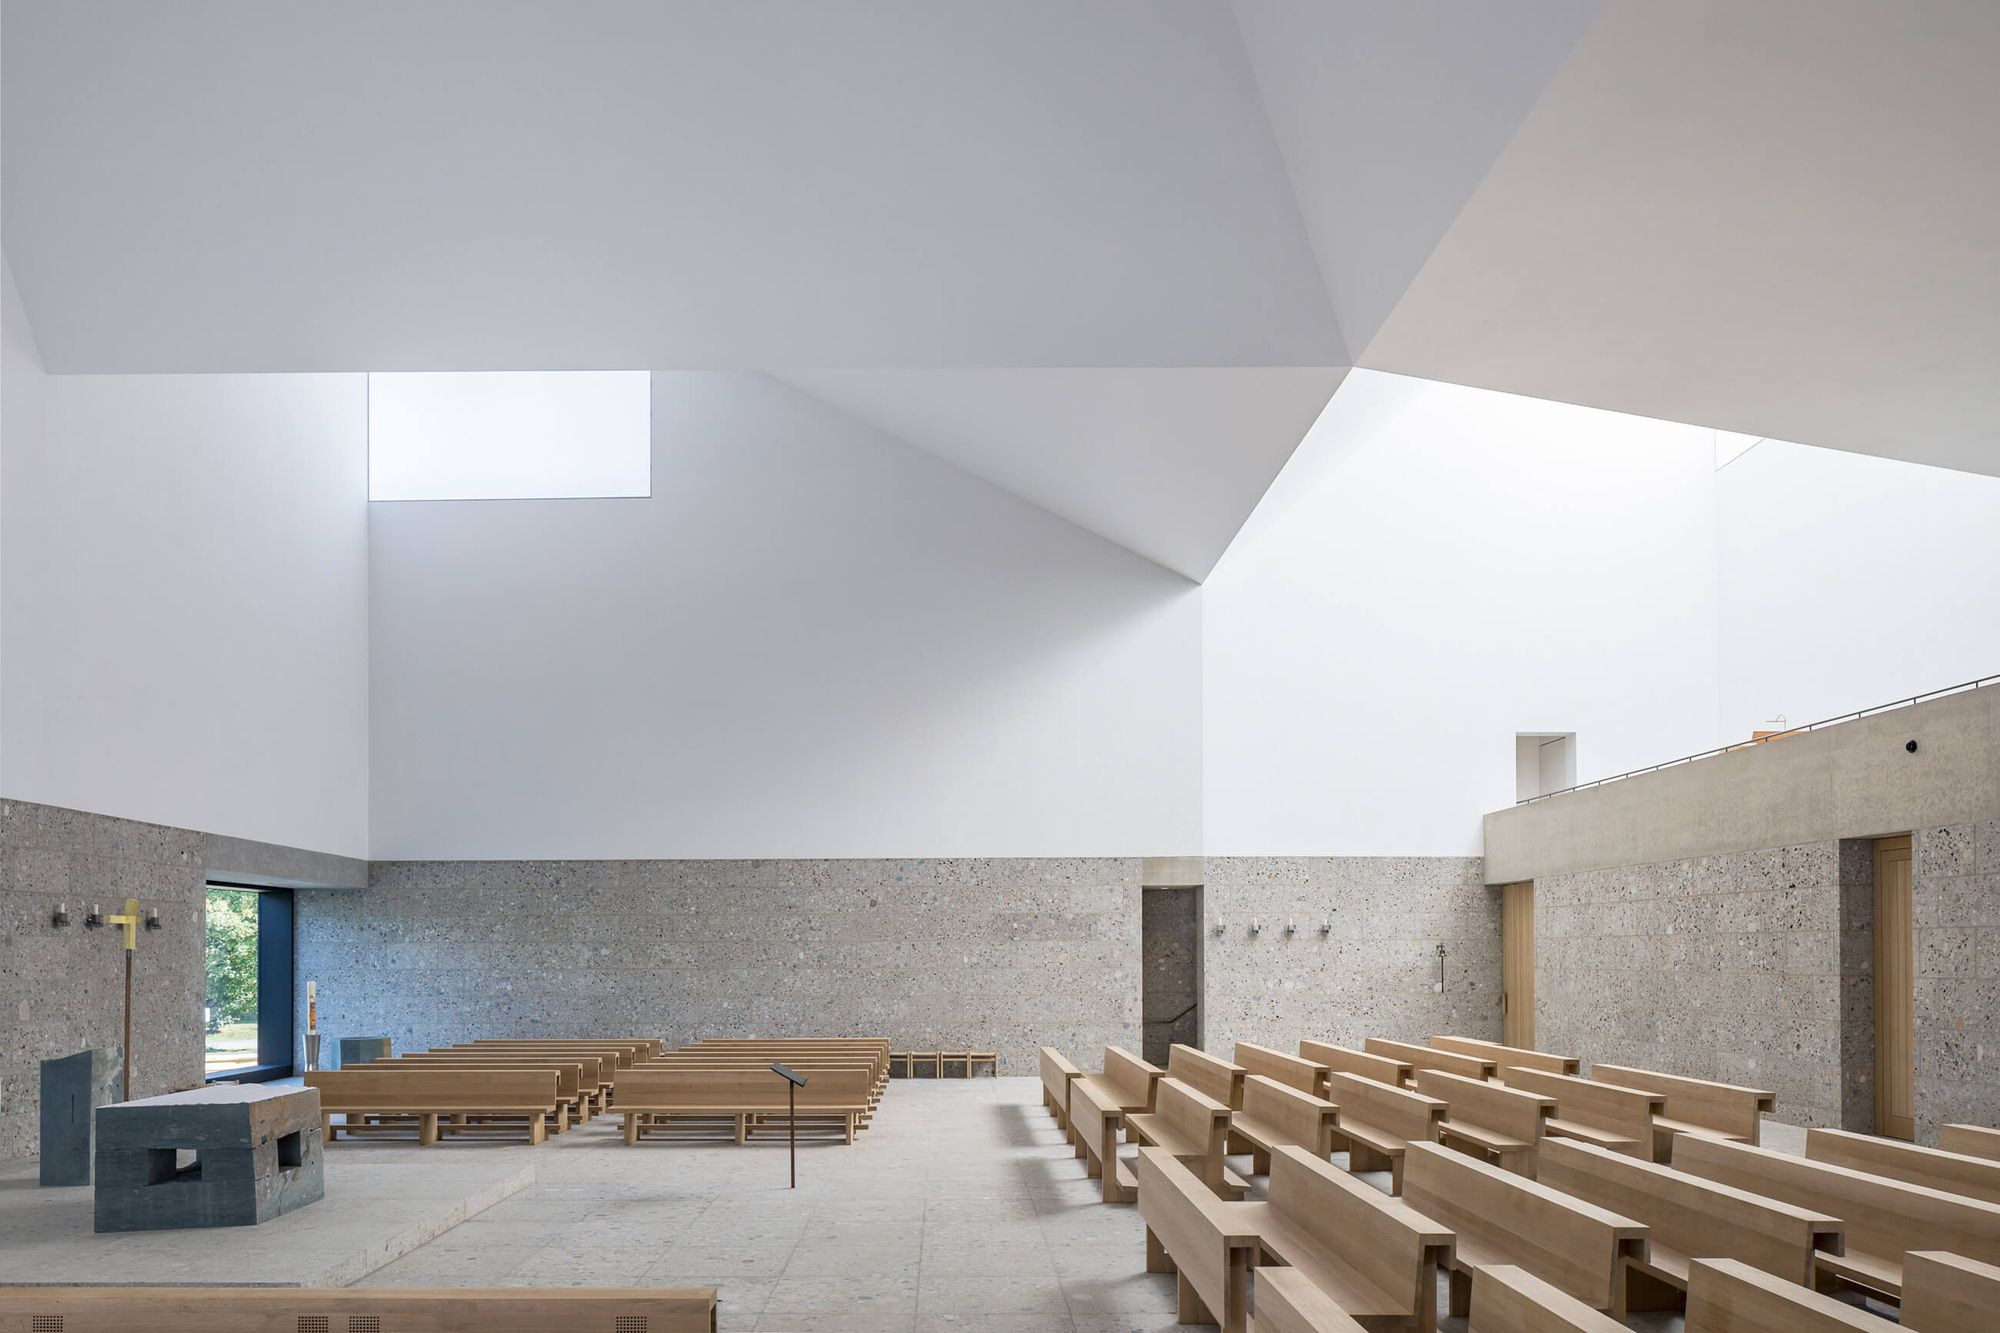 Meck Architekten Meck Architekten Seliger Pater Rupert Church Complex Poing 7